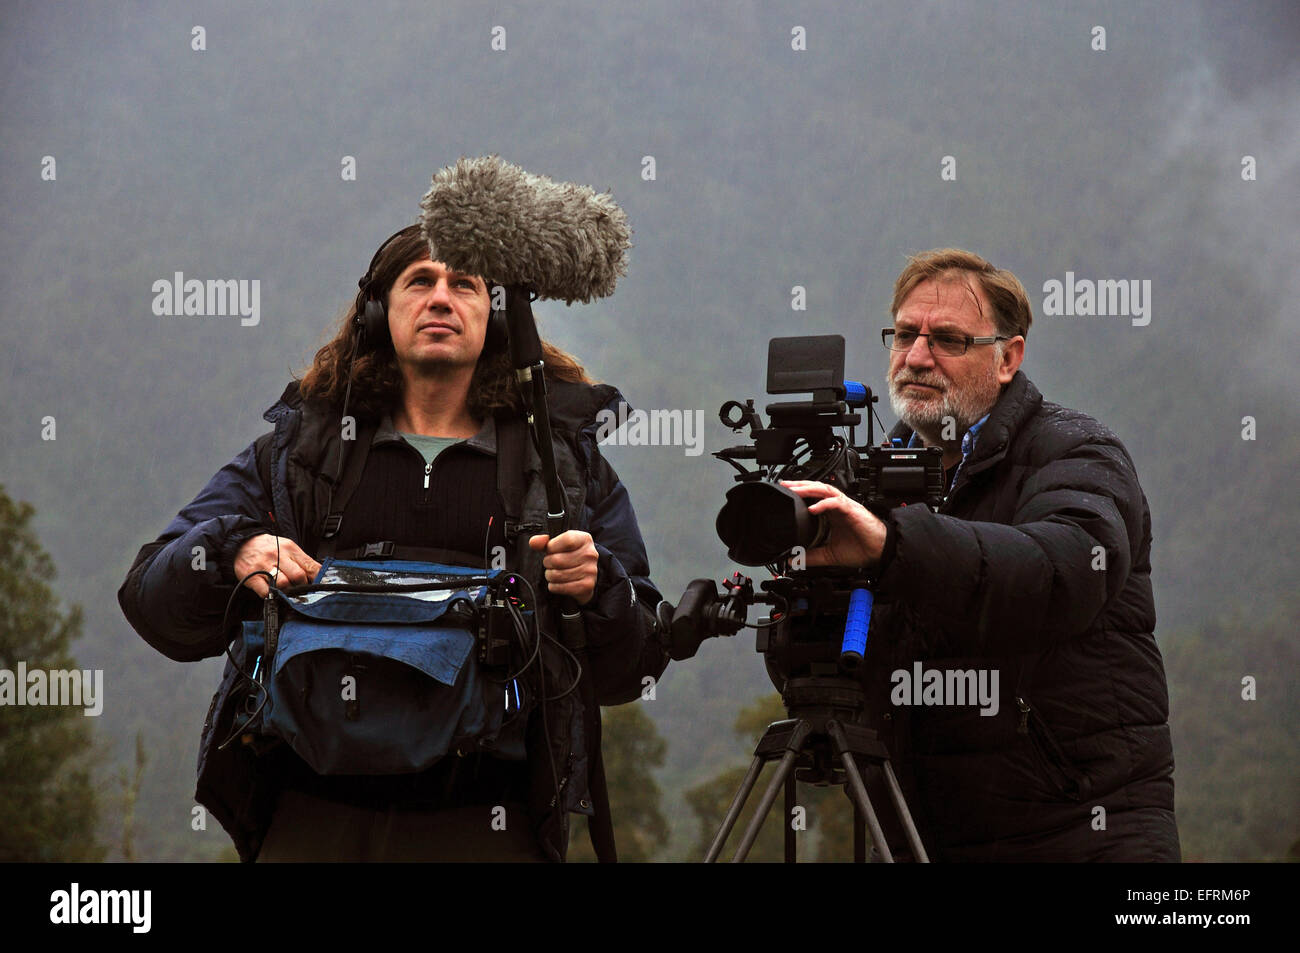 Cameraman and sound recordist at work on the West Coast, New Zealand - Stock Image